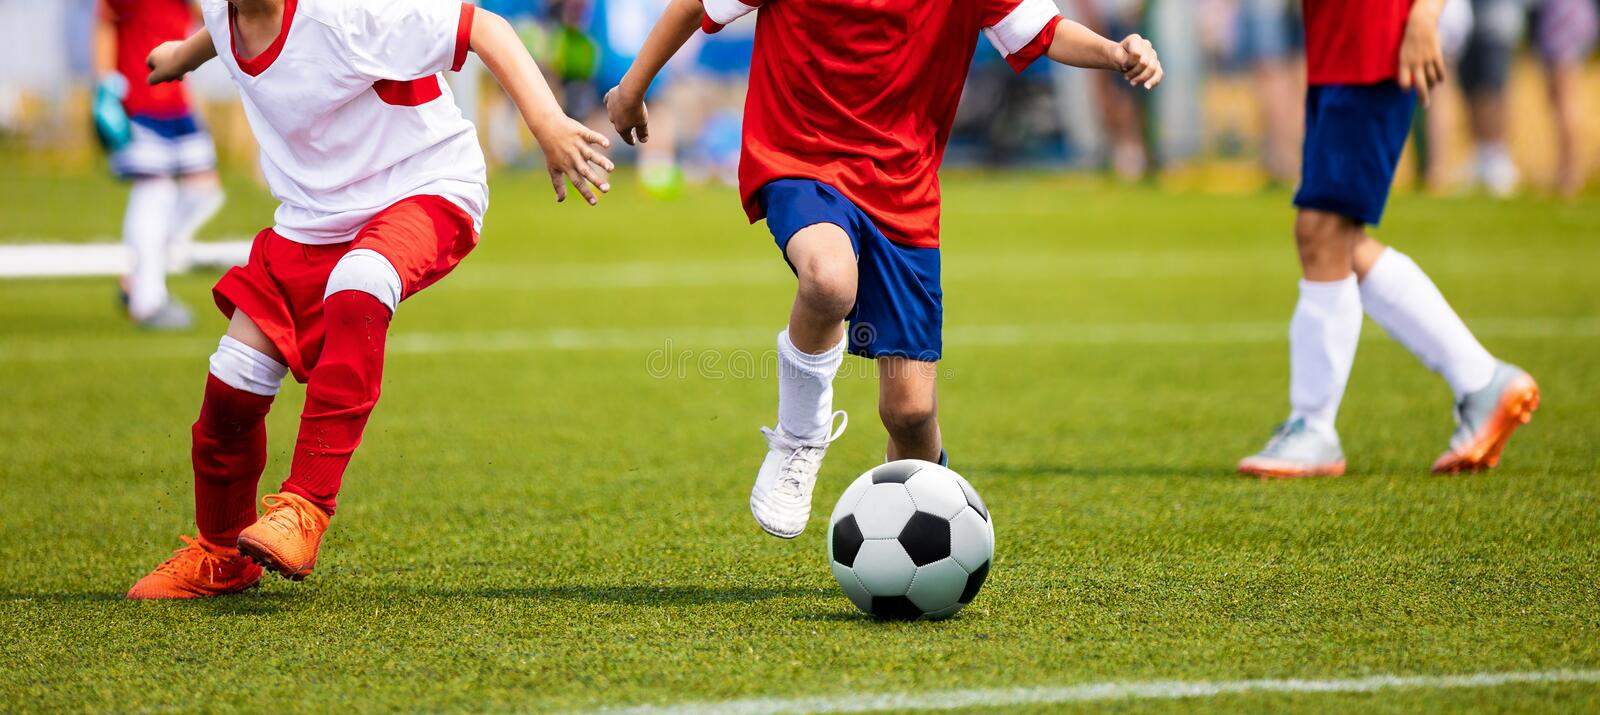 Boys Kicking Soccer Match on Grass. Youth Football Game. ChildreBoys Kicking Soccer Match on Grass. Youth Football Game. Children. Boys Kicking Soccer Match on royalty free stock photo